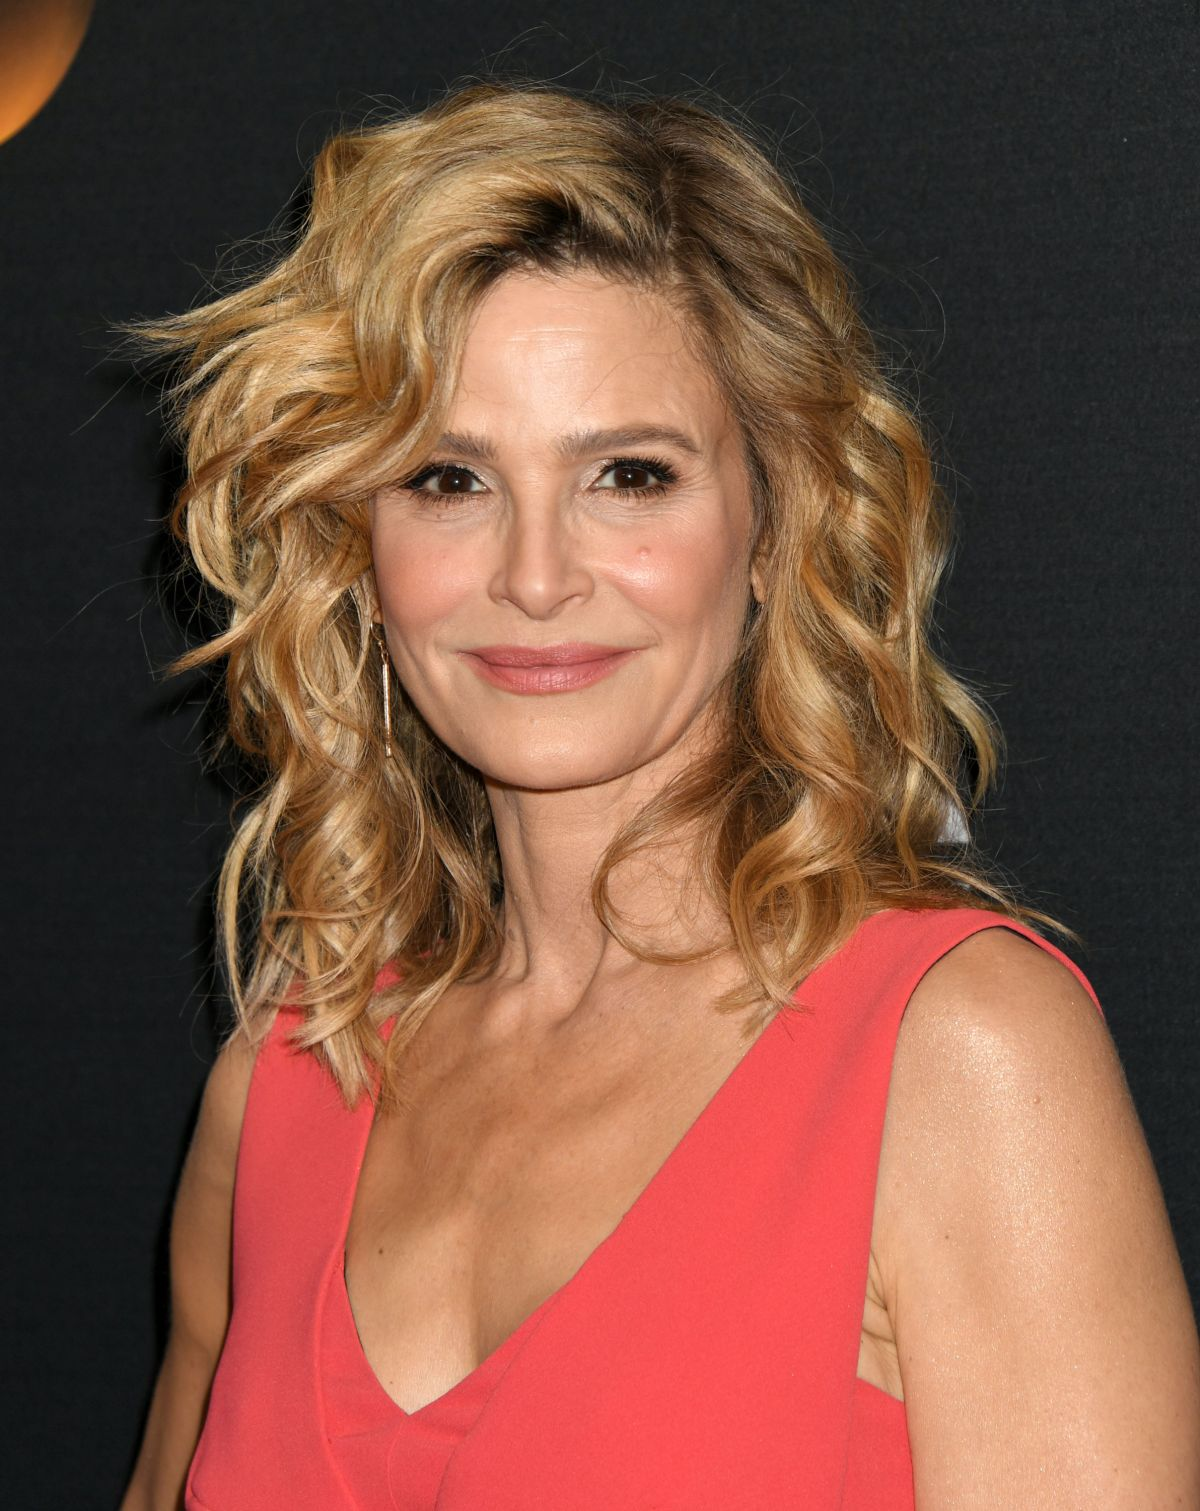 KYRA SEDGWICK at 2017 ABC Upfronts Presentation in New York 05/16/2017